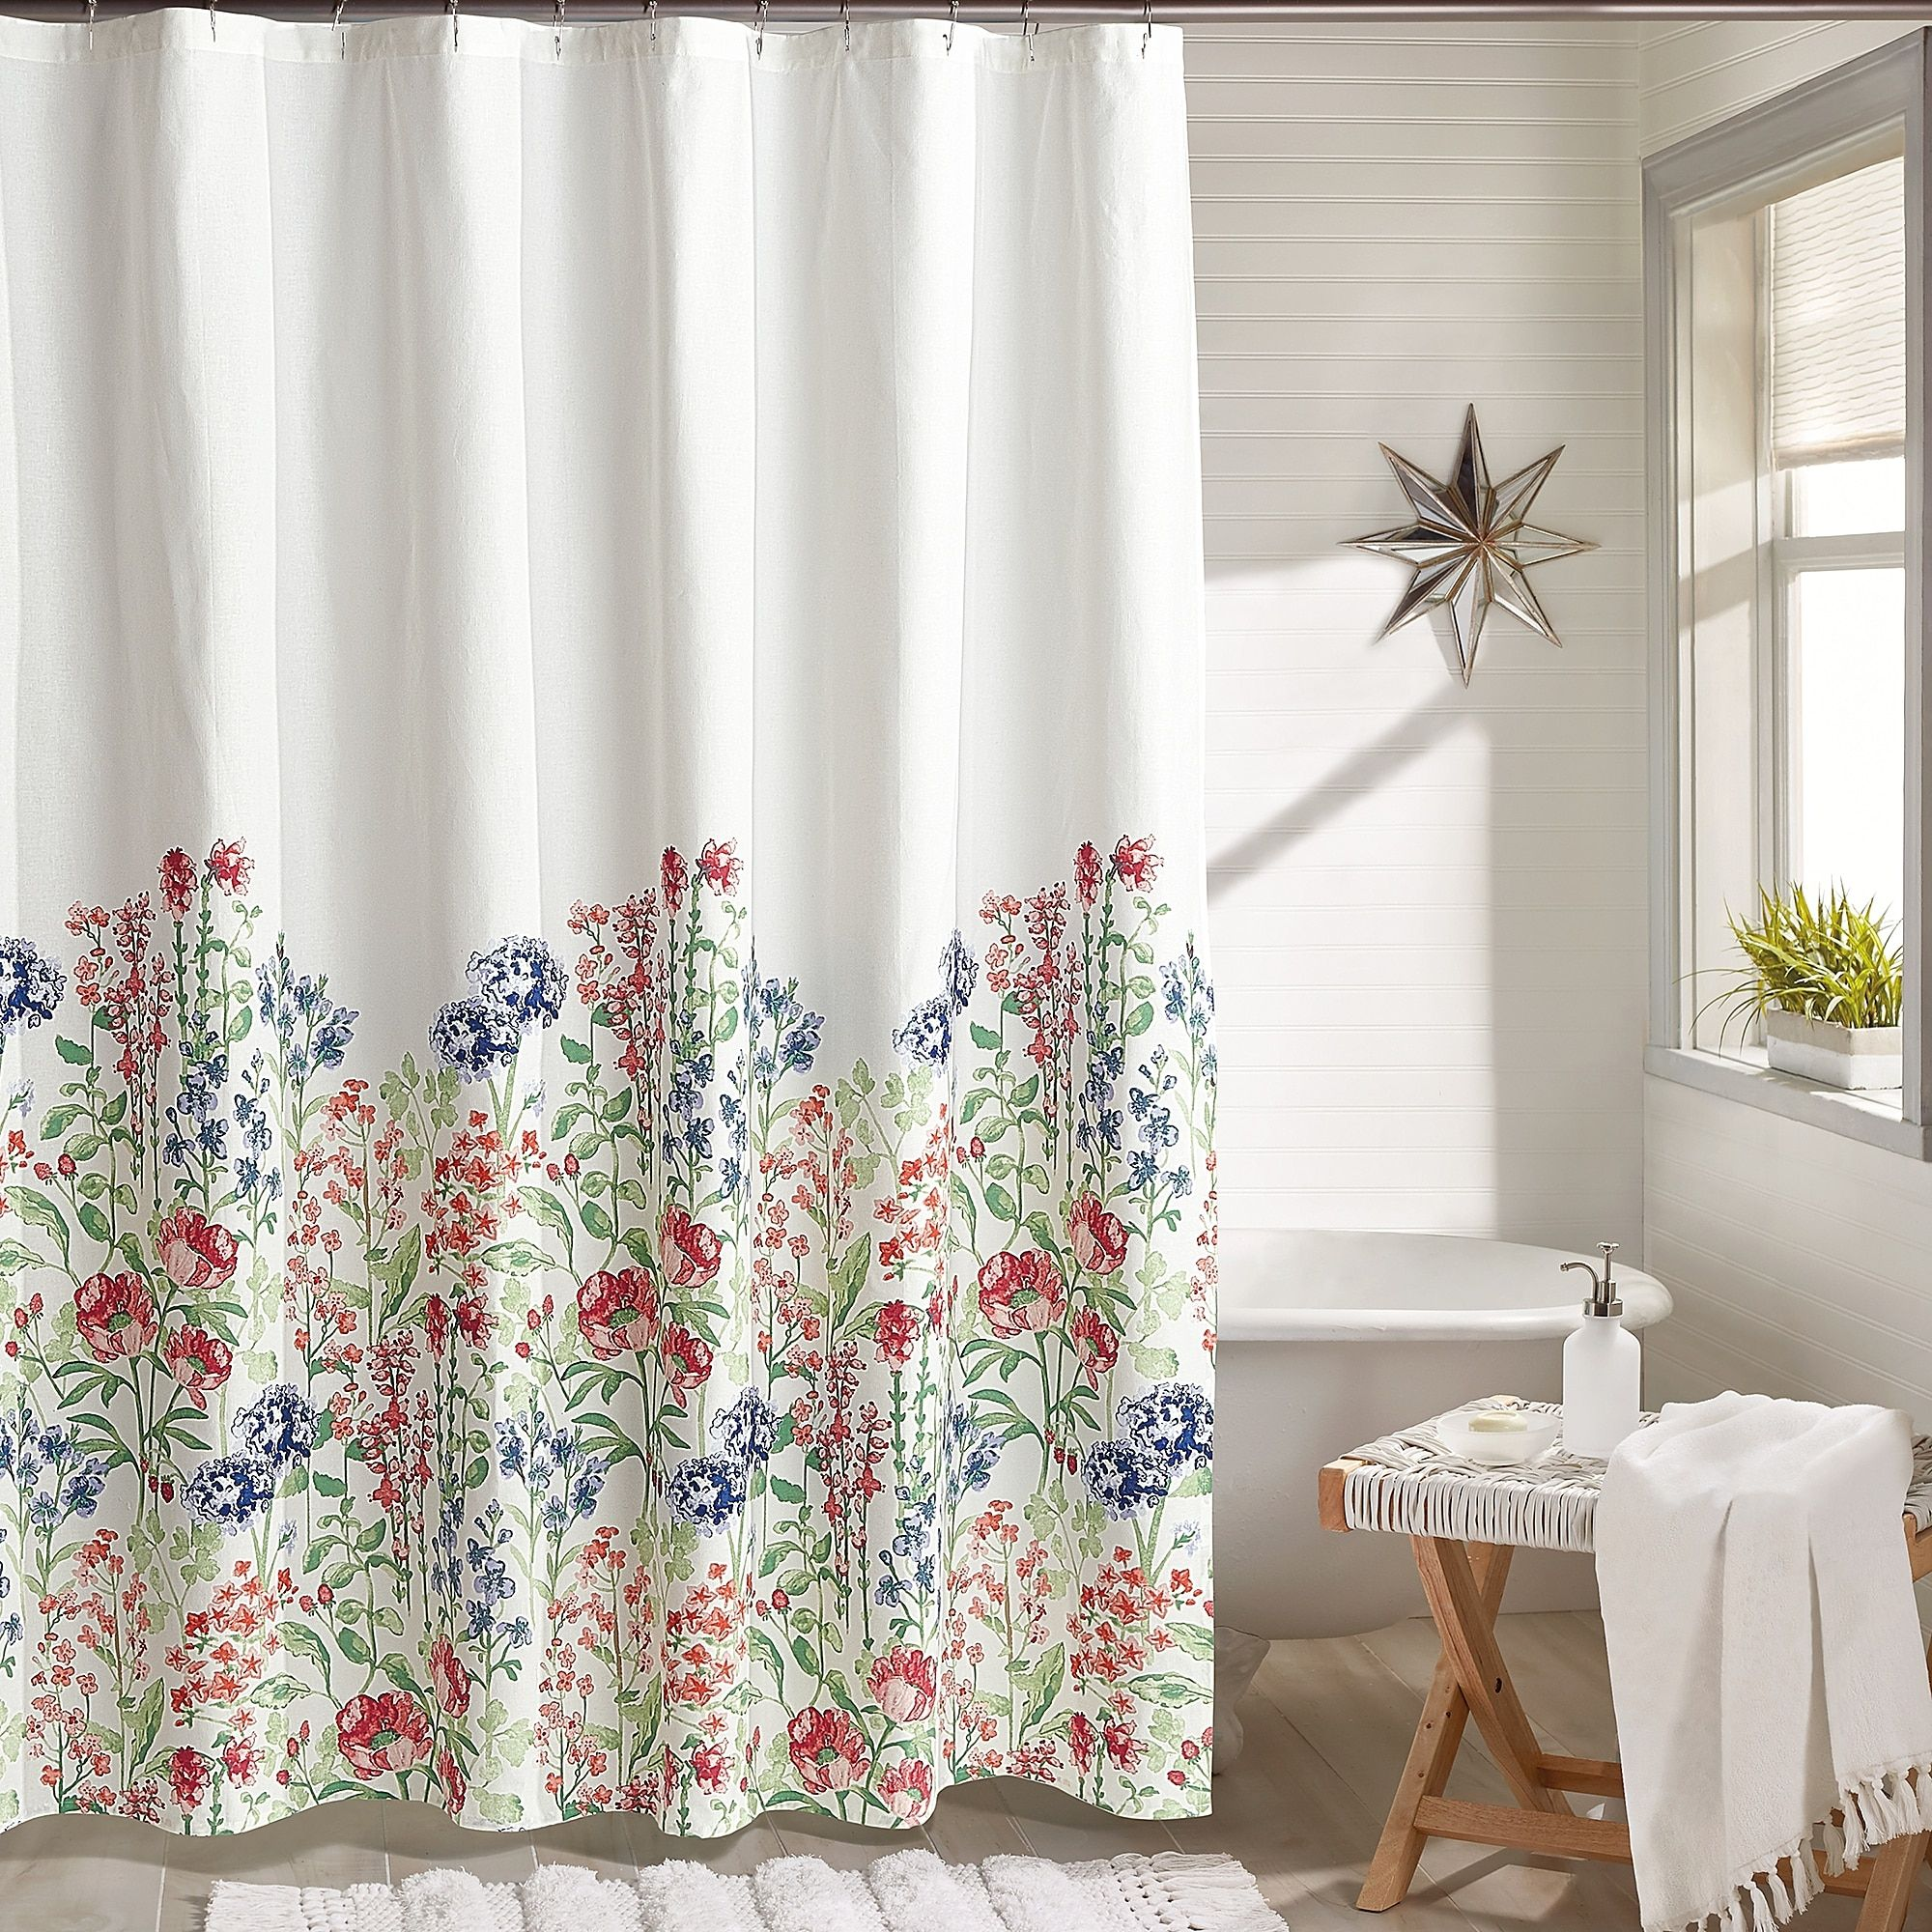 Peri Home Emma Floral Shower Curtain Bed Bath Beyond Floral